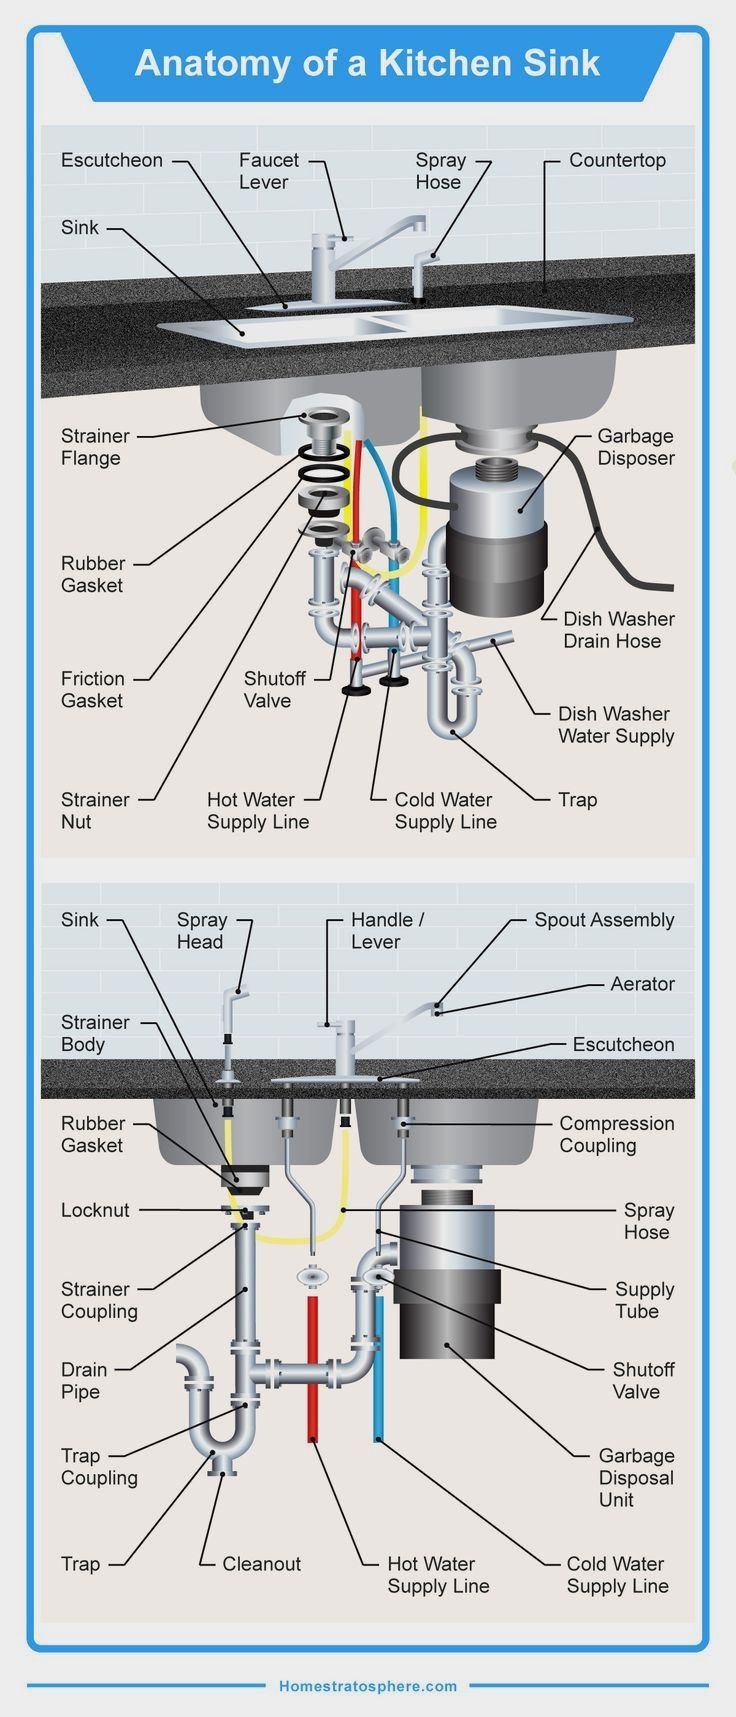 medium resolution of detailed diagram illustrating all the 35 different parts of a kitchen sink including hot and cold water lines dishwasher wa plumbing pipe furniture in